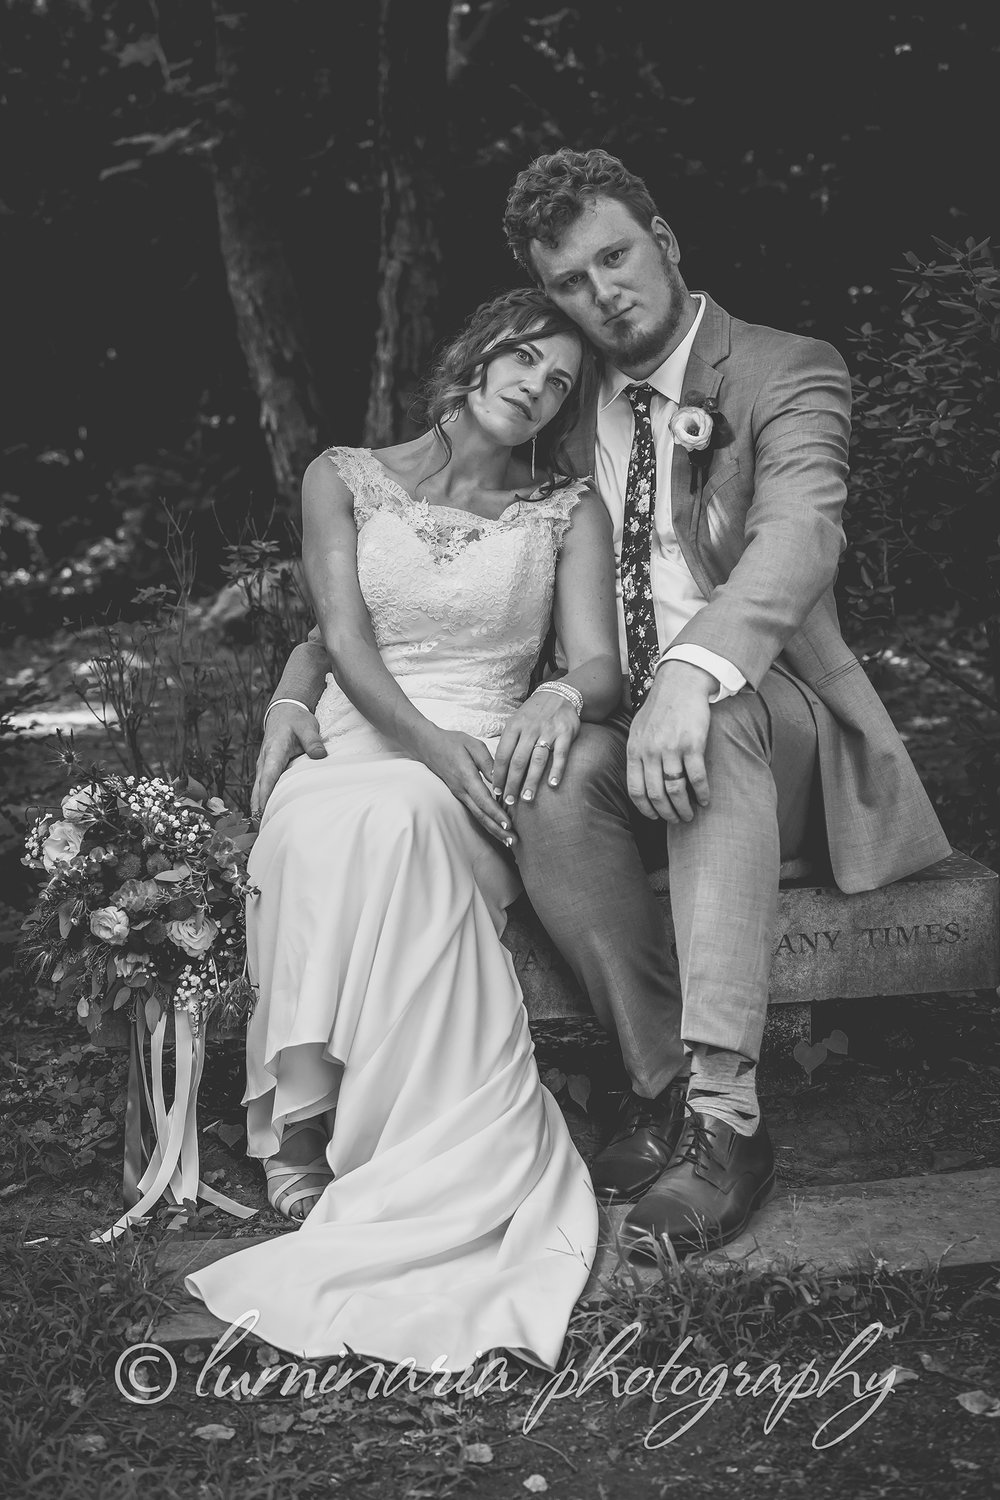 Mary & Tim August 12, 2018